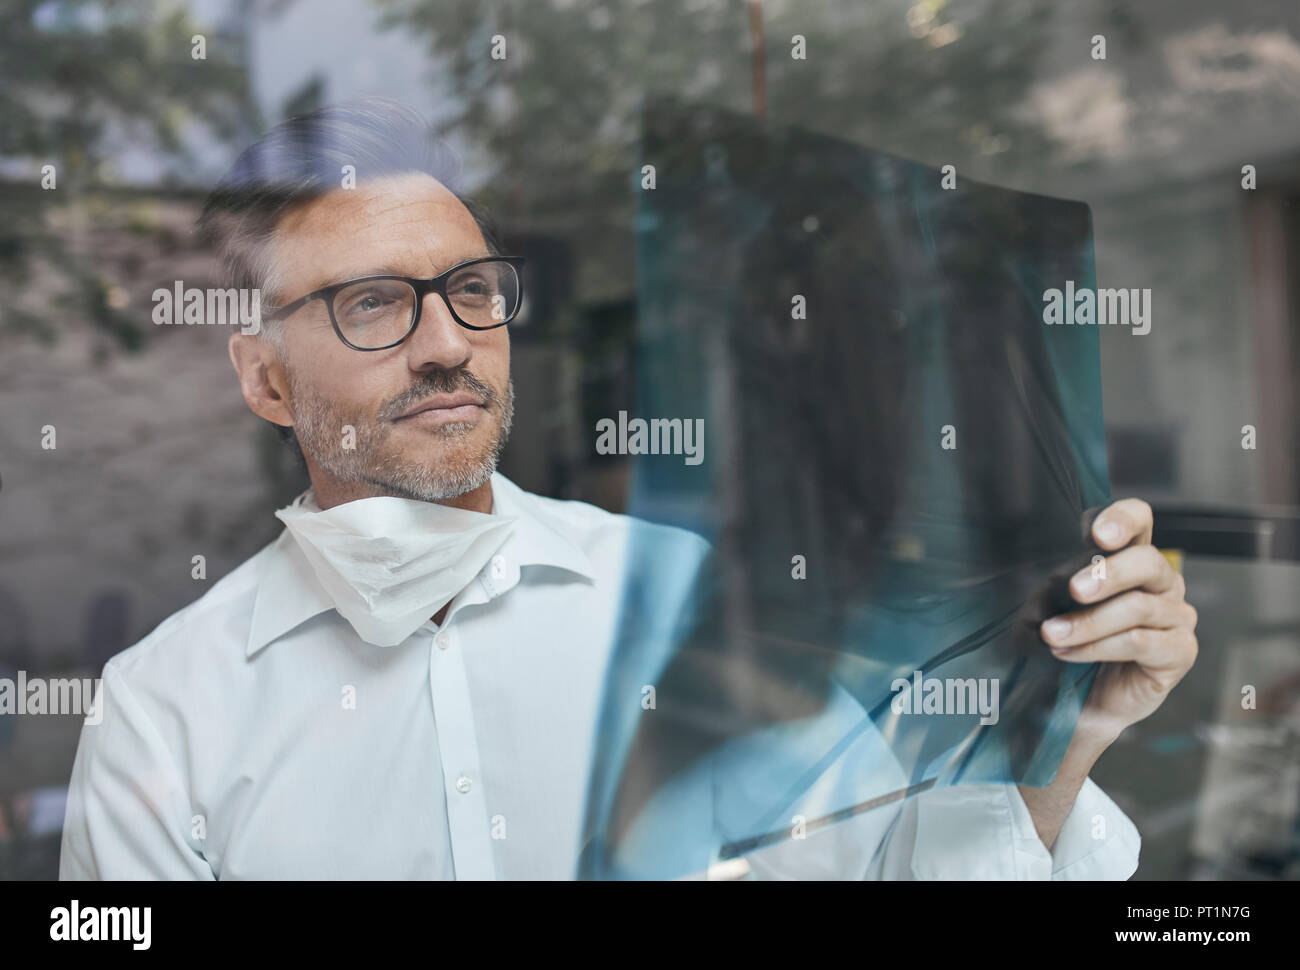 Portrait of radiologist behind windowpane looking at x-ray image - Stock Image